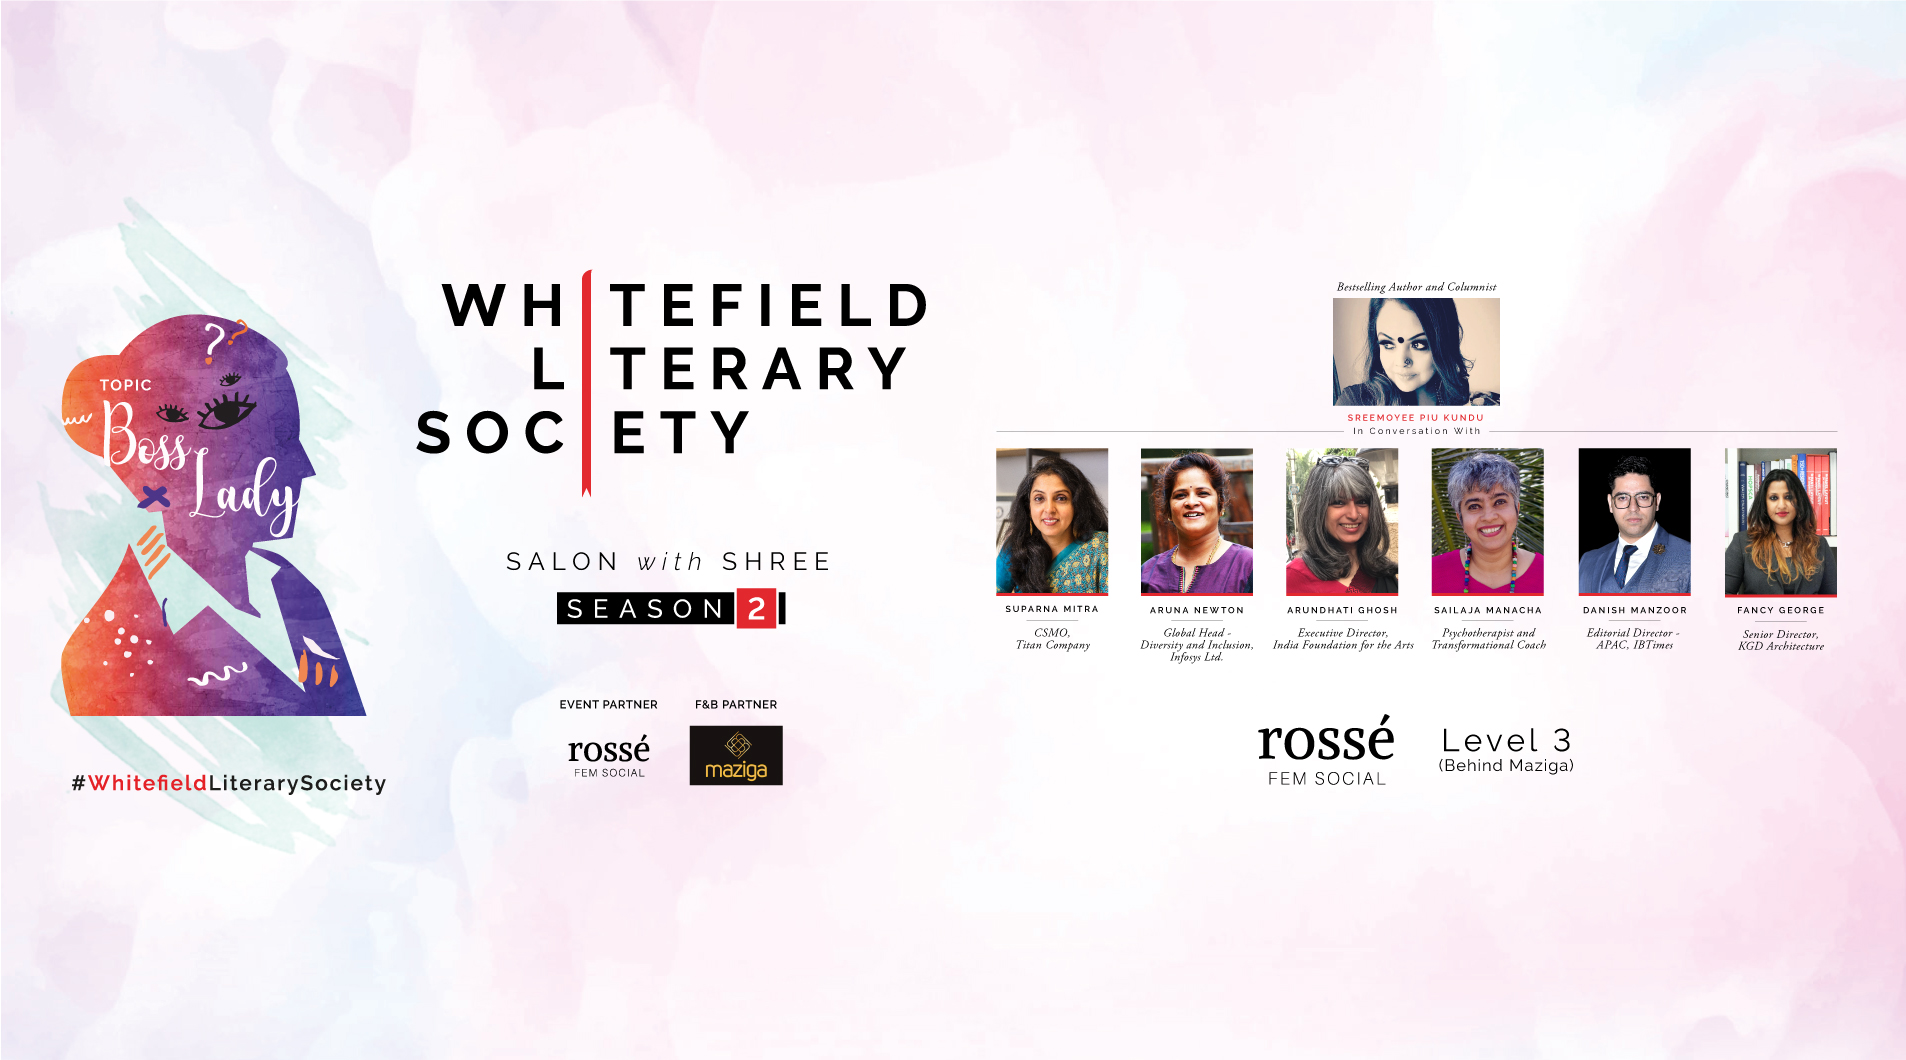 Whitefield Literary Society - Salon with Shree